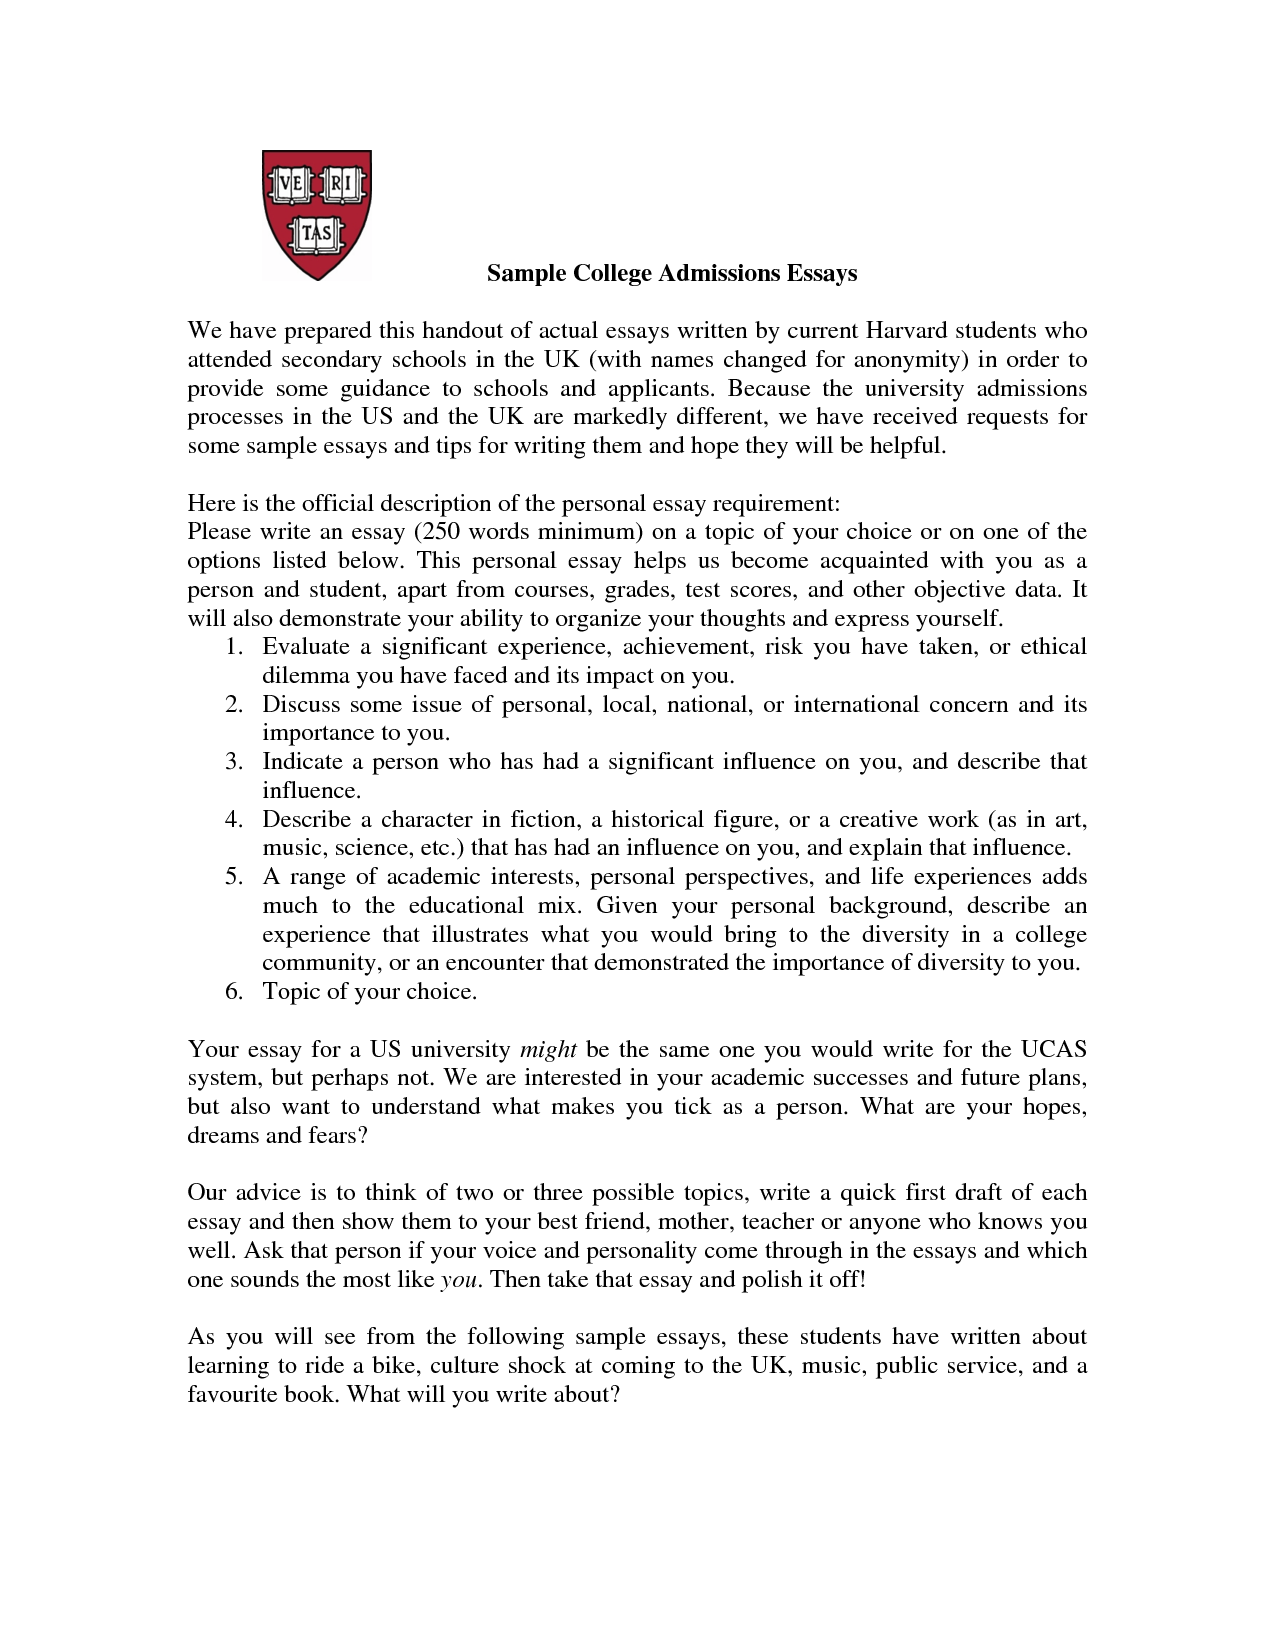 004 Sample College Application Essay Example Surprising Essays That Worked For Ivy League Pdf 1 Full